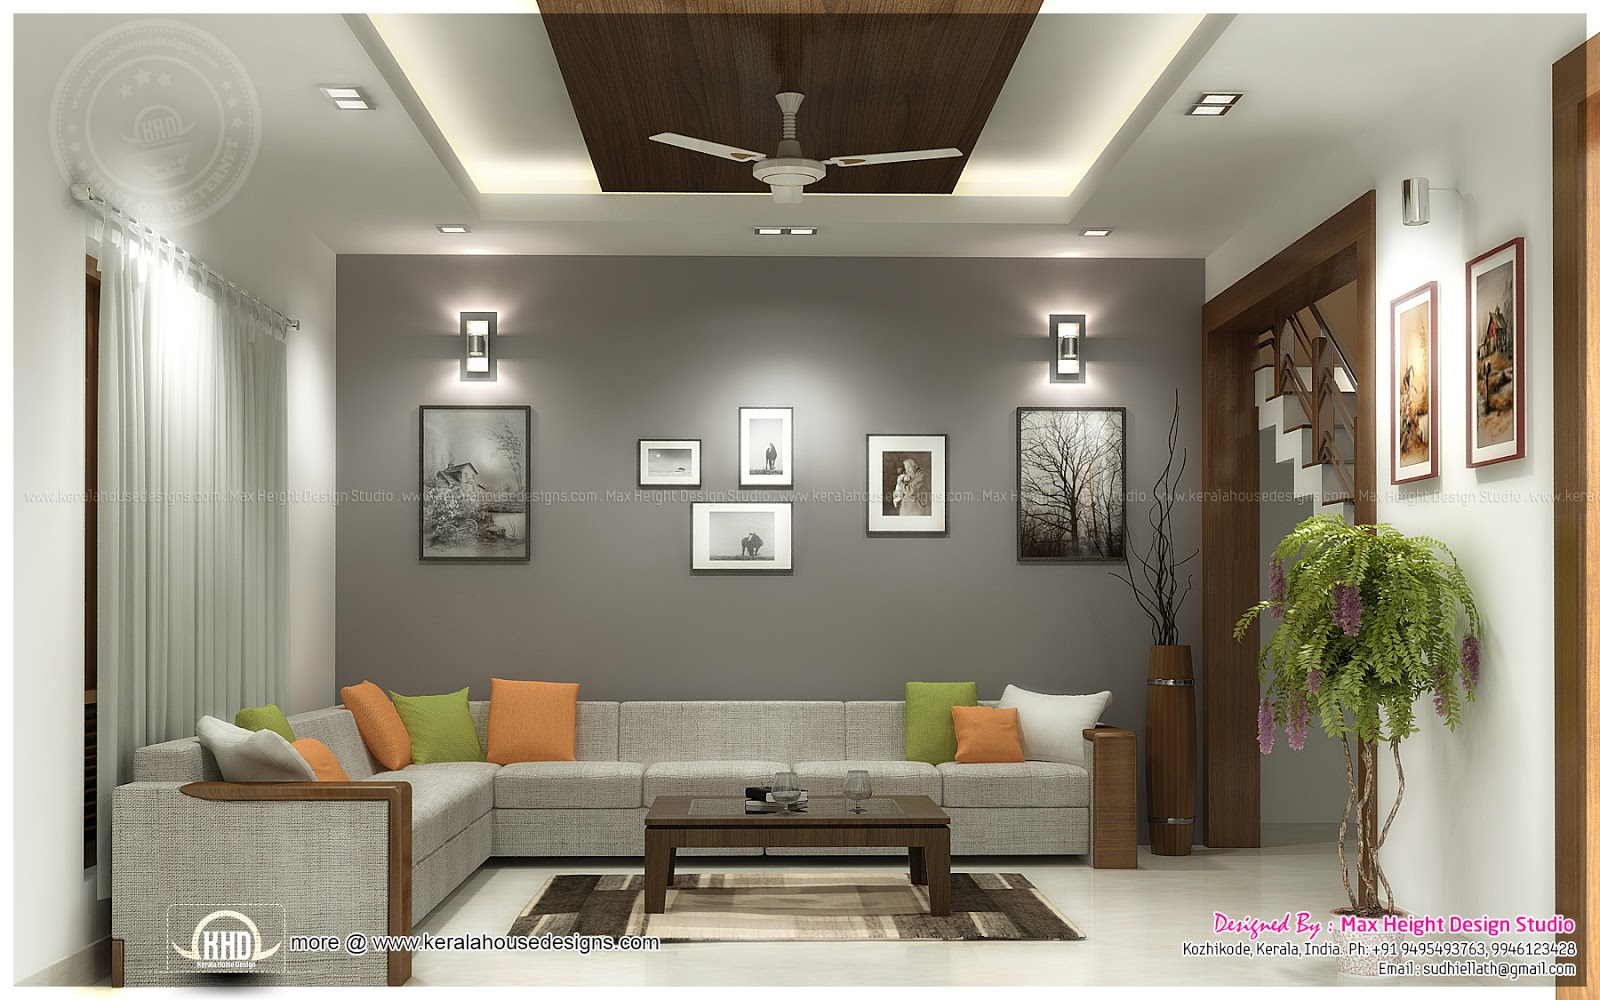 Beautiful interior ideas for home | Home Kerala Plans